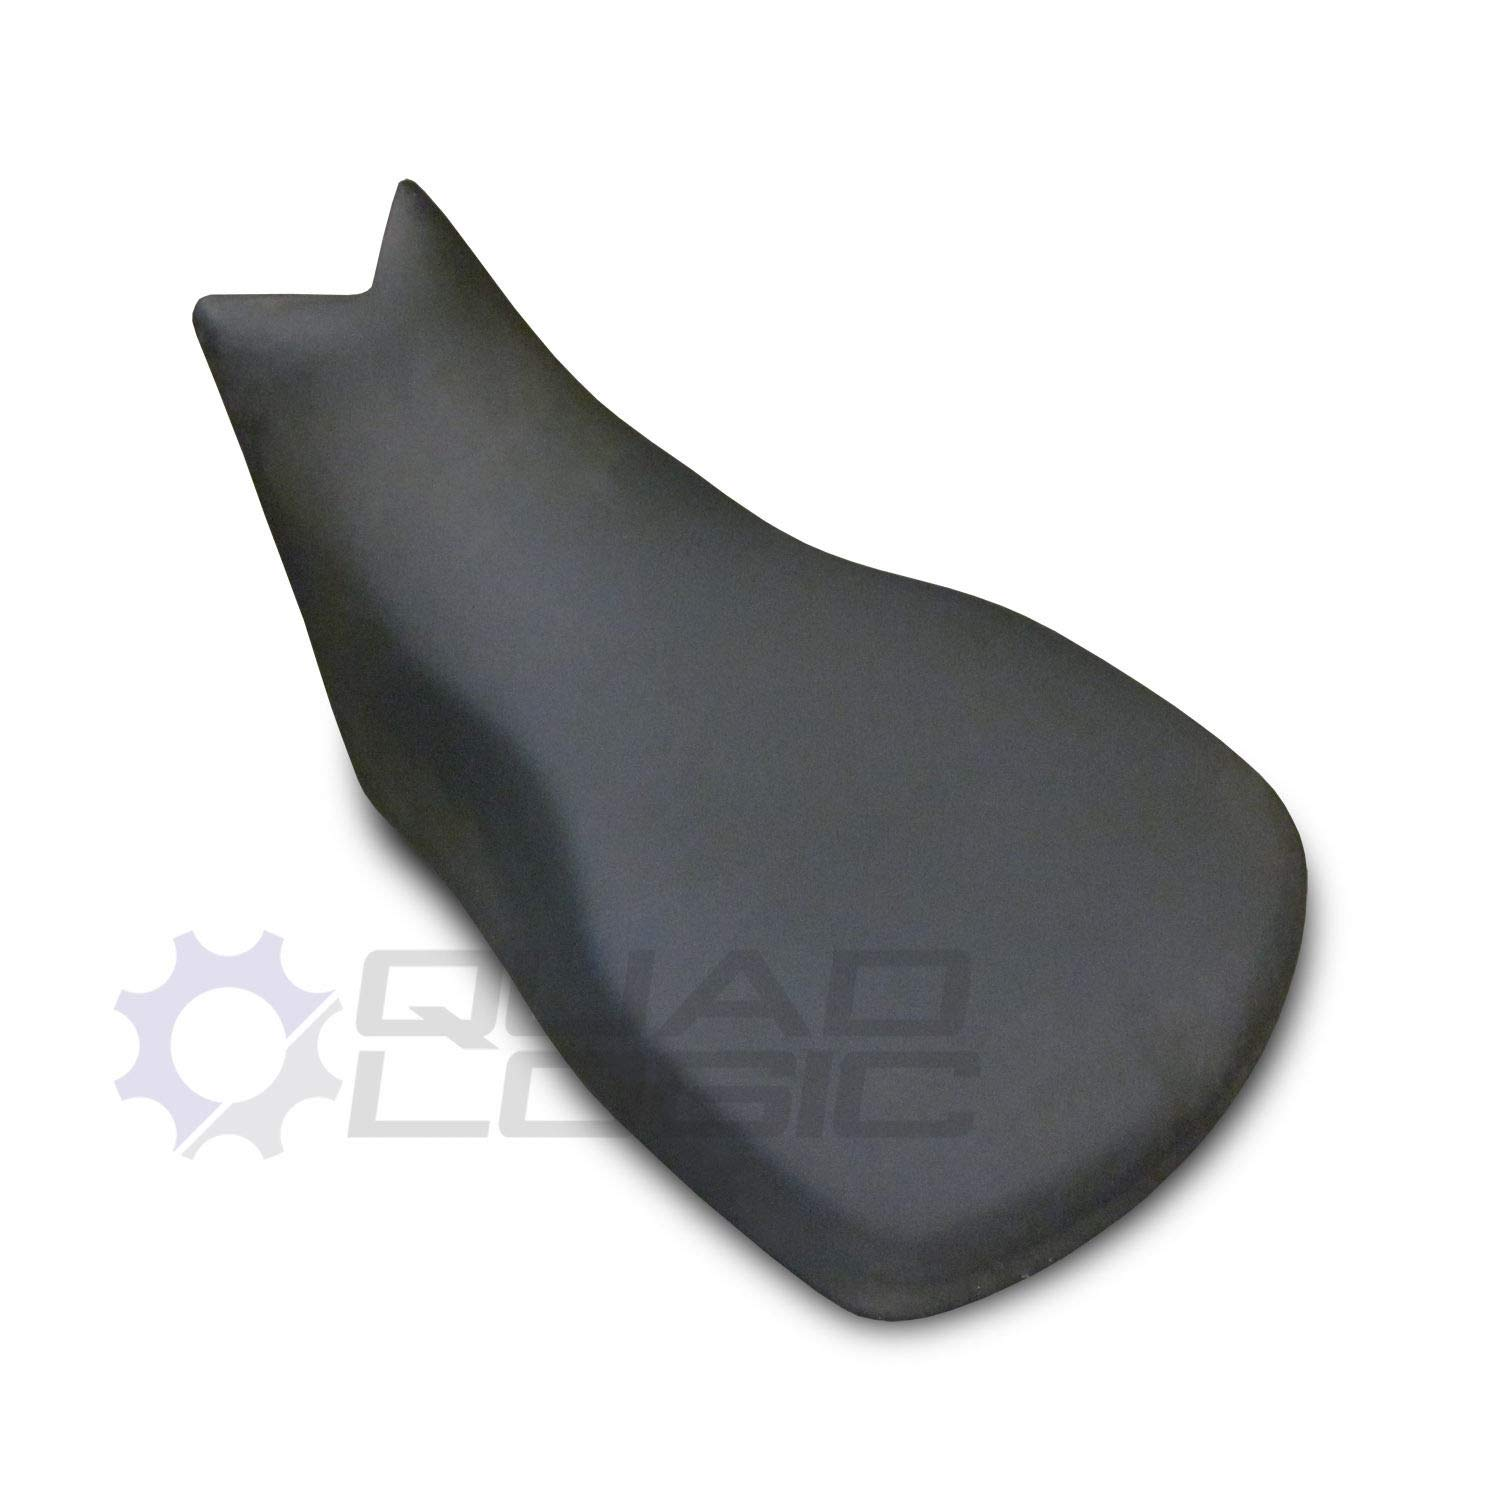 2009-16 Polaris Sportsman 550 850 XP Replacement GRIPPER Seat Cover